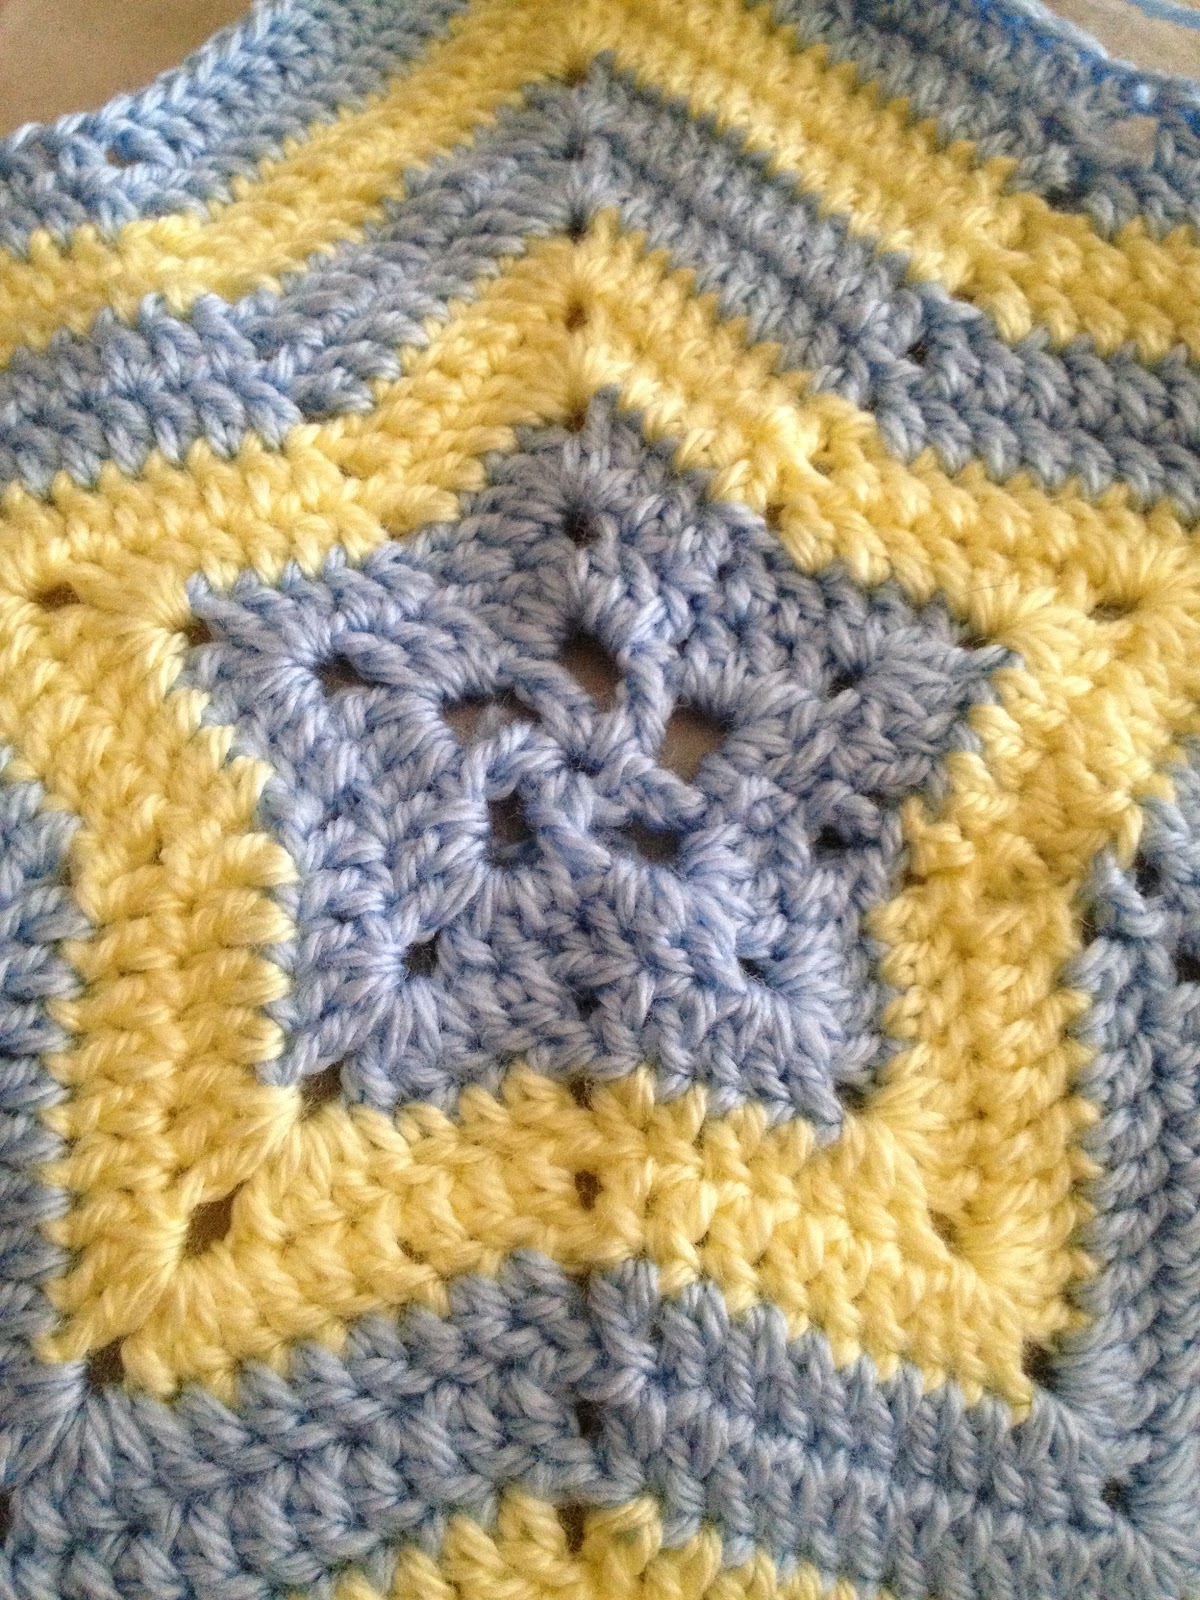 Cooks arts crafts shoppe star crochet blanket star crochet blanket bankloansurffo Images